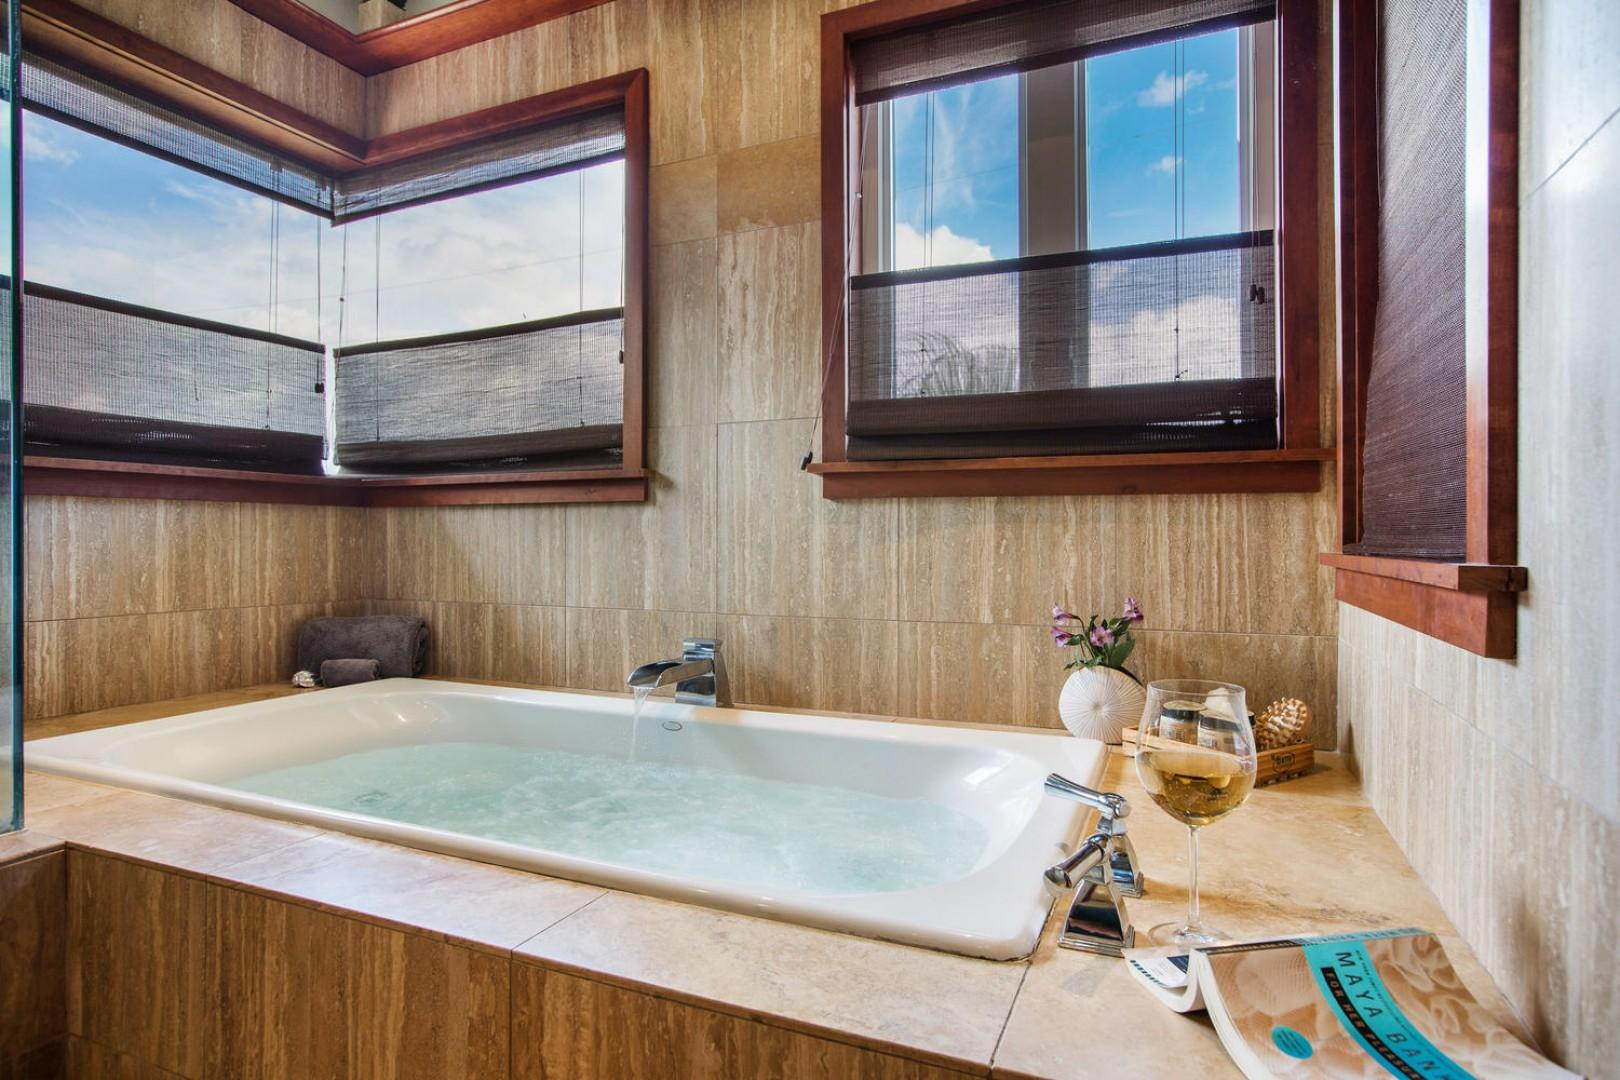 Grab a glass of wine and soak up all the aloha Kahala Alii has to offer.